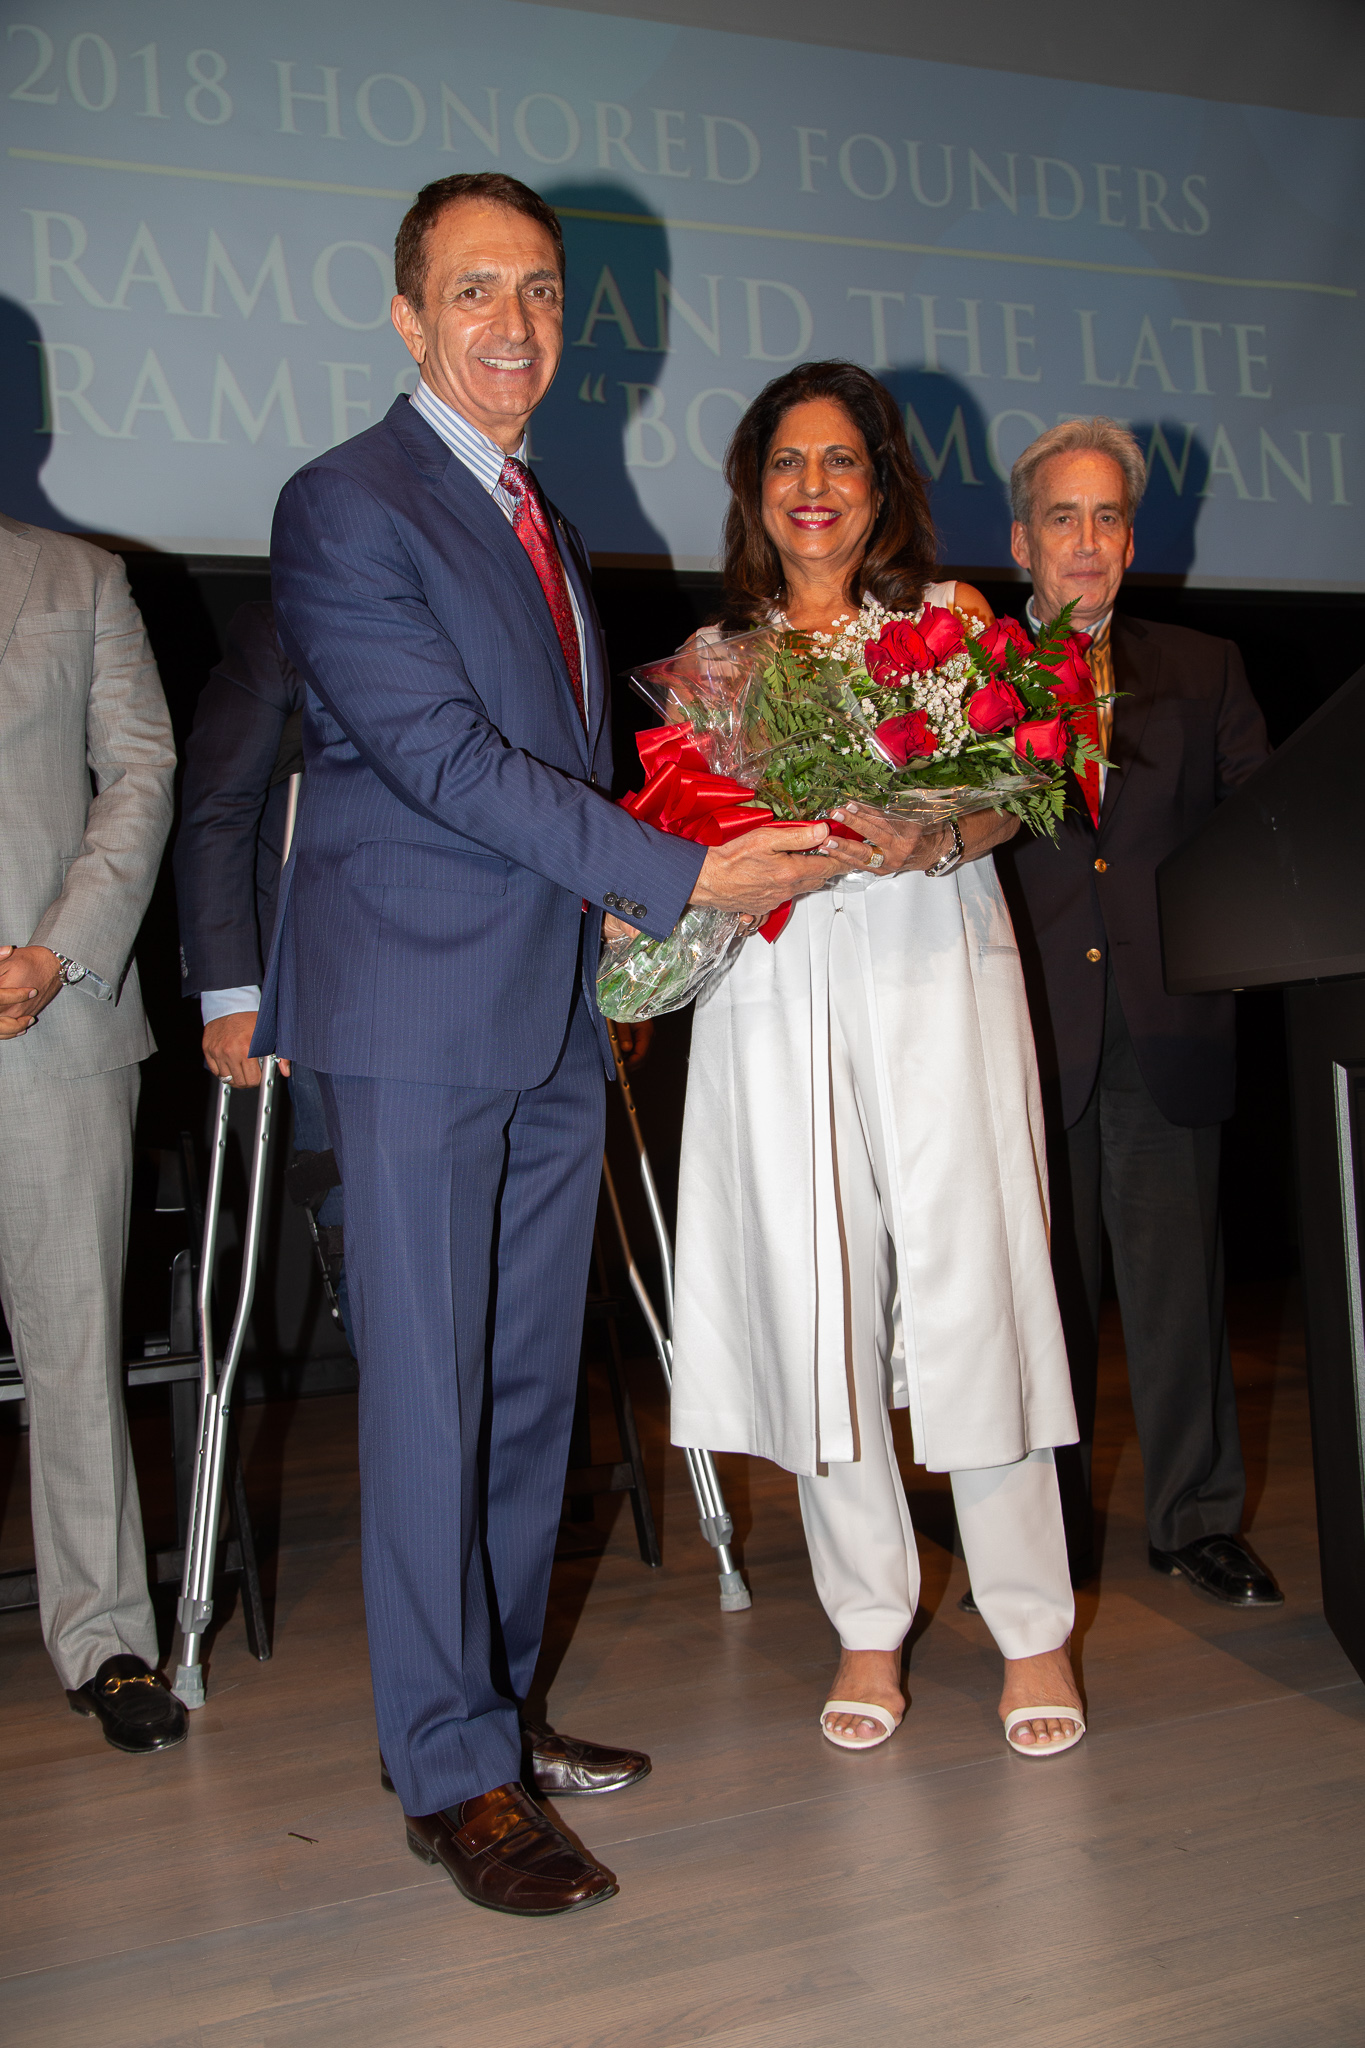 Mayor Dean Trantalis with 2018 Honored Founder Ramola Motwani